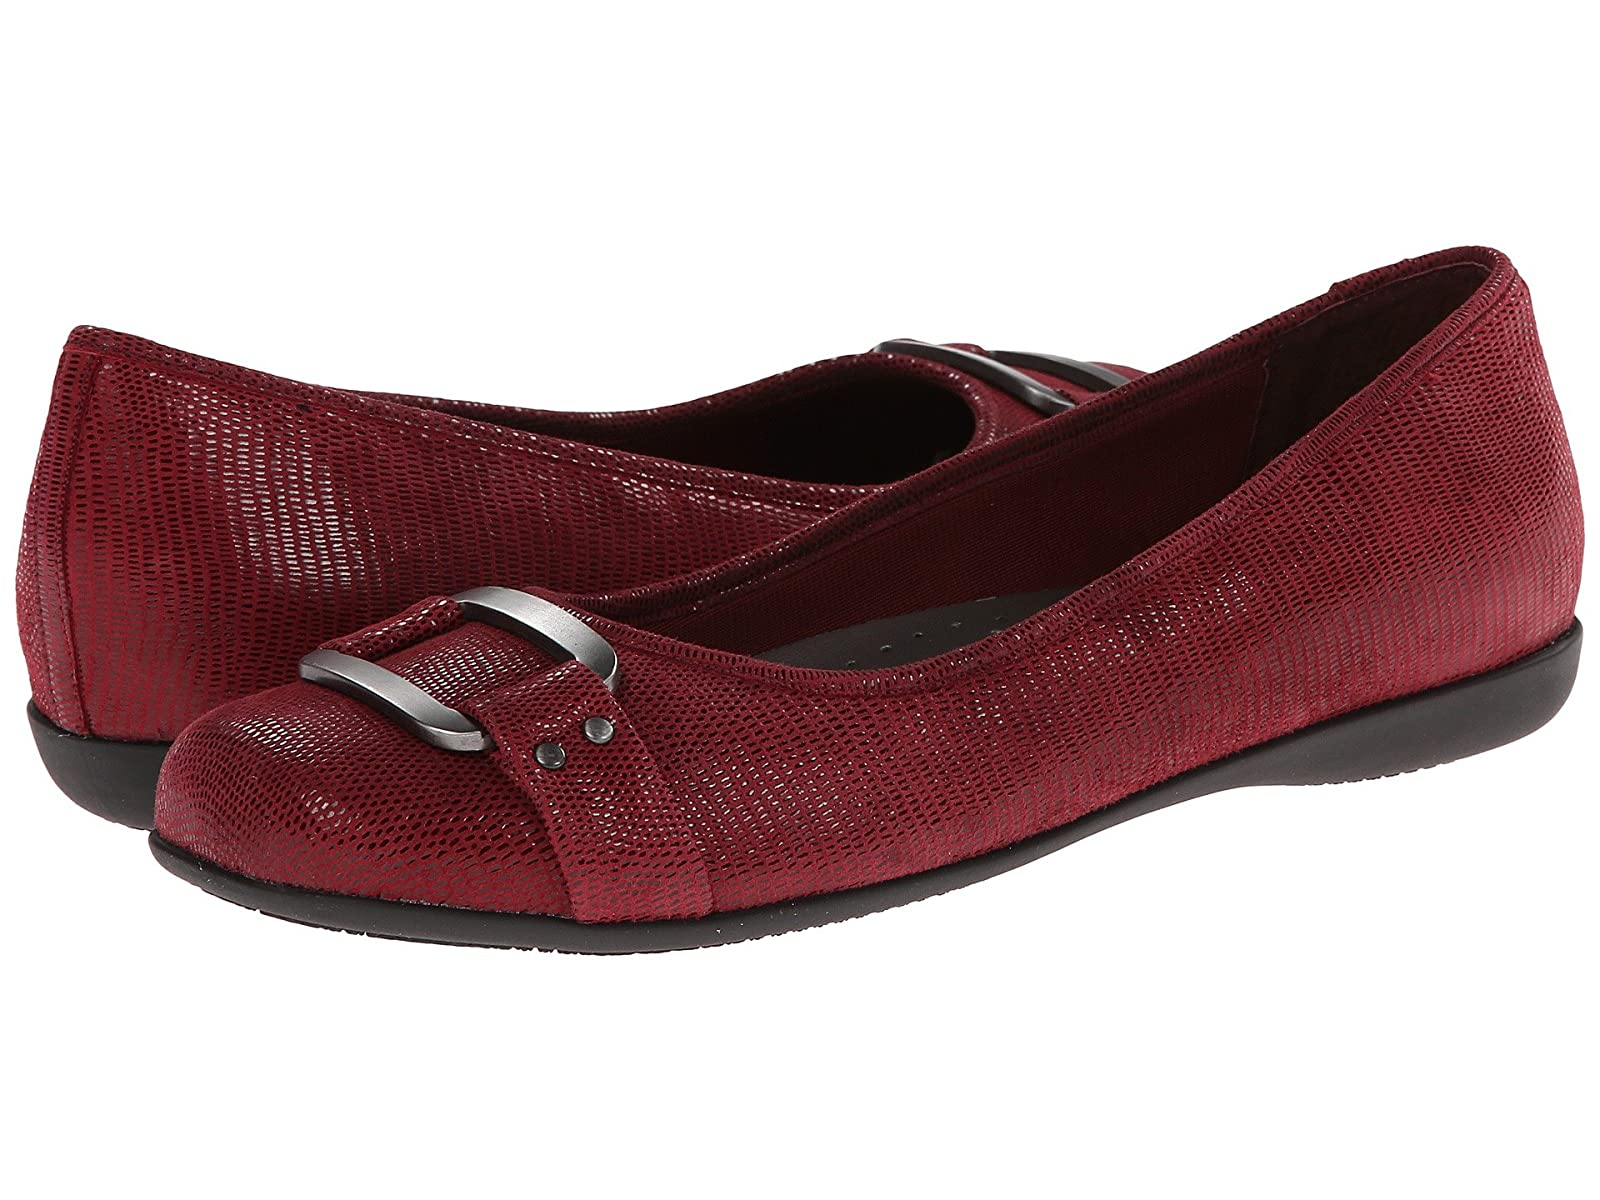 Trotters SizzleCheap and distinctive eye-catching shoes